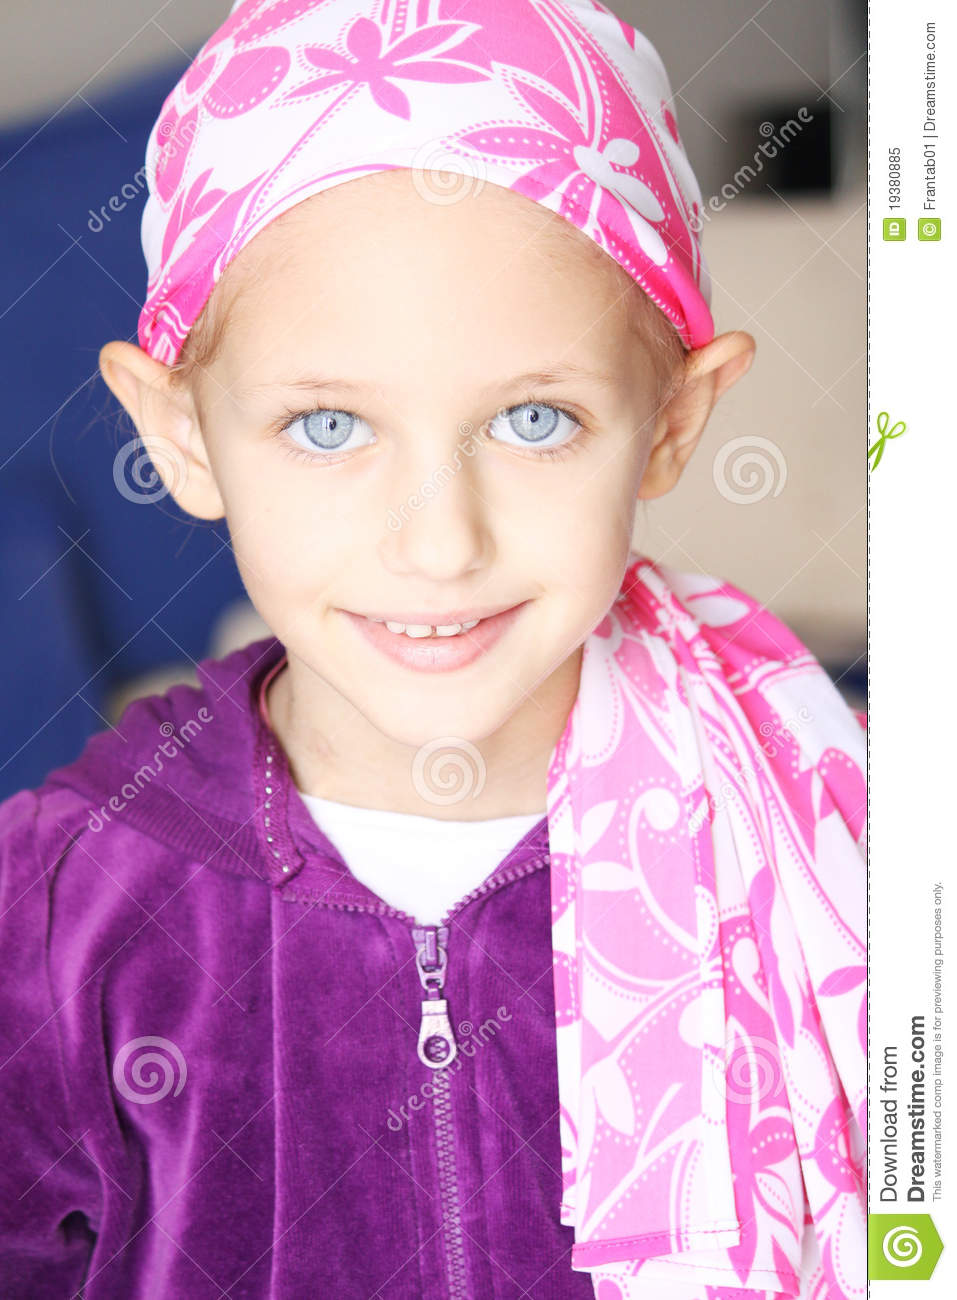 Child With Cancer Royalty Free Stock Photo Image 19380885